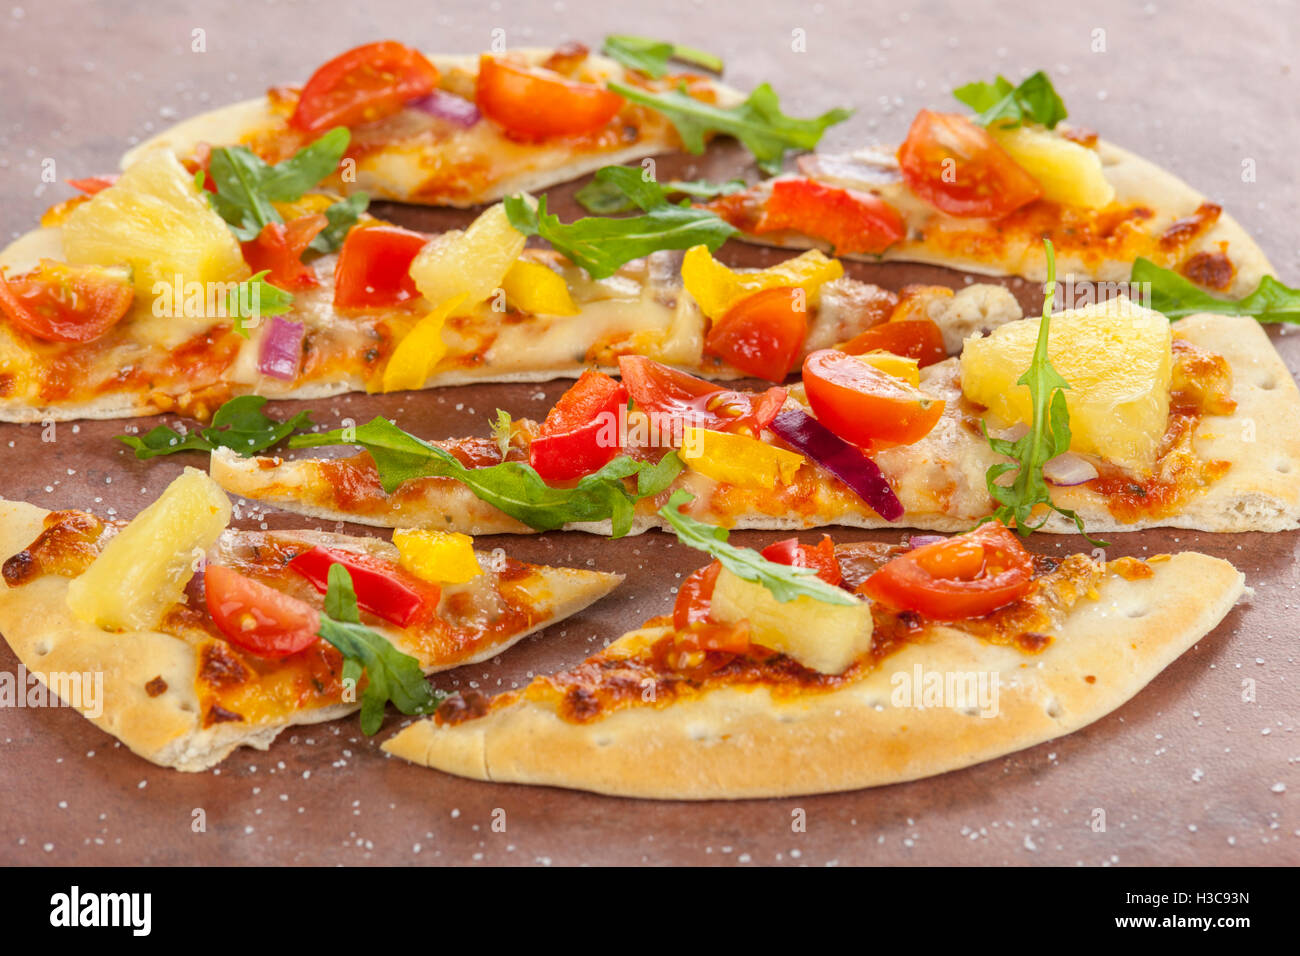 Stone baked thin crust pizza with pineapple, pepper and red onions sprinkled with sea salt and rocket leaves Stock Photo